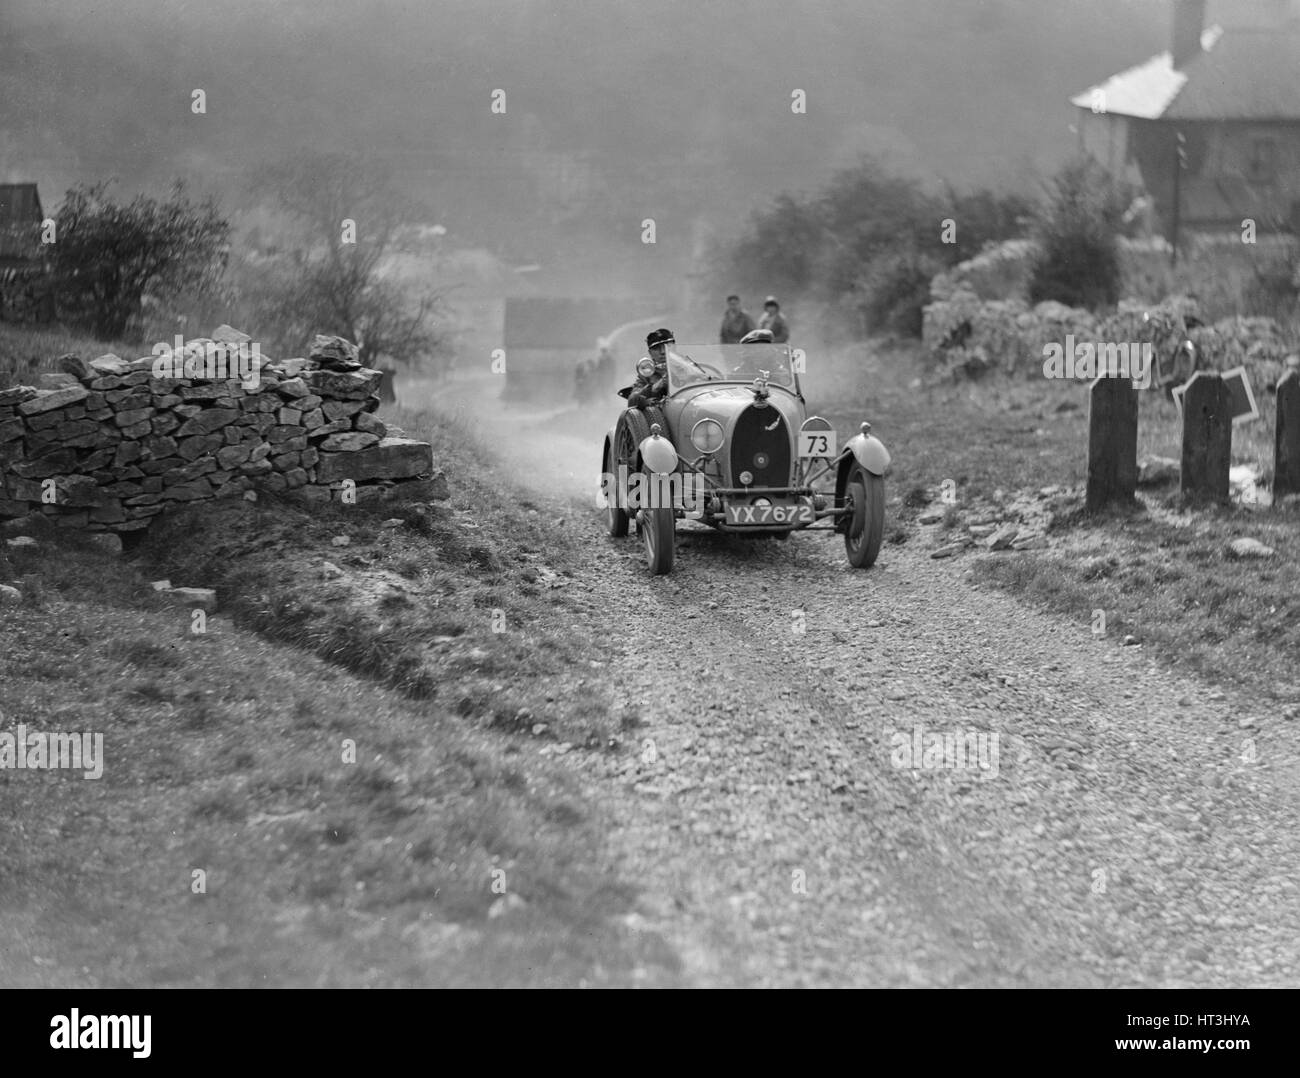 Bugatti Type 40 of HW Blaw competing in the MCC Sporting Trial, 1930. Artist: Bill Brunell. - Stock Image